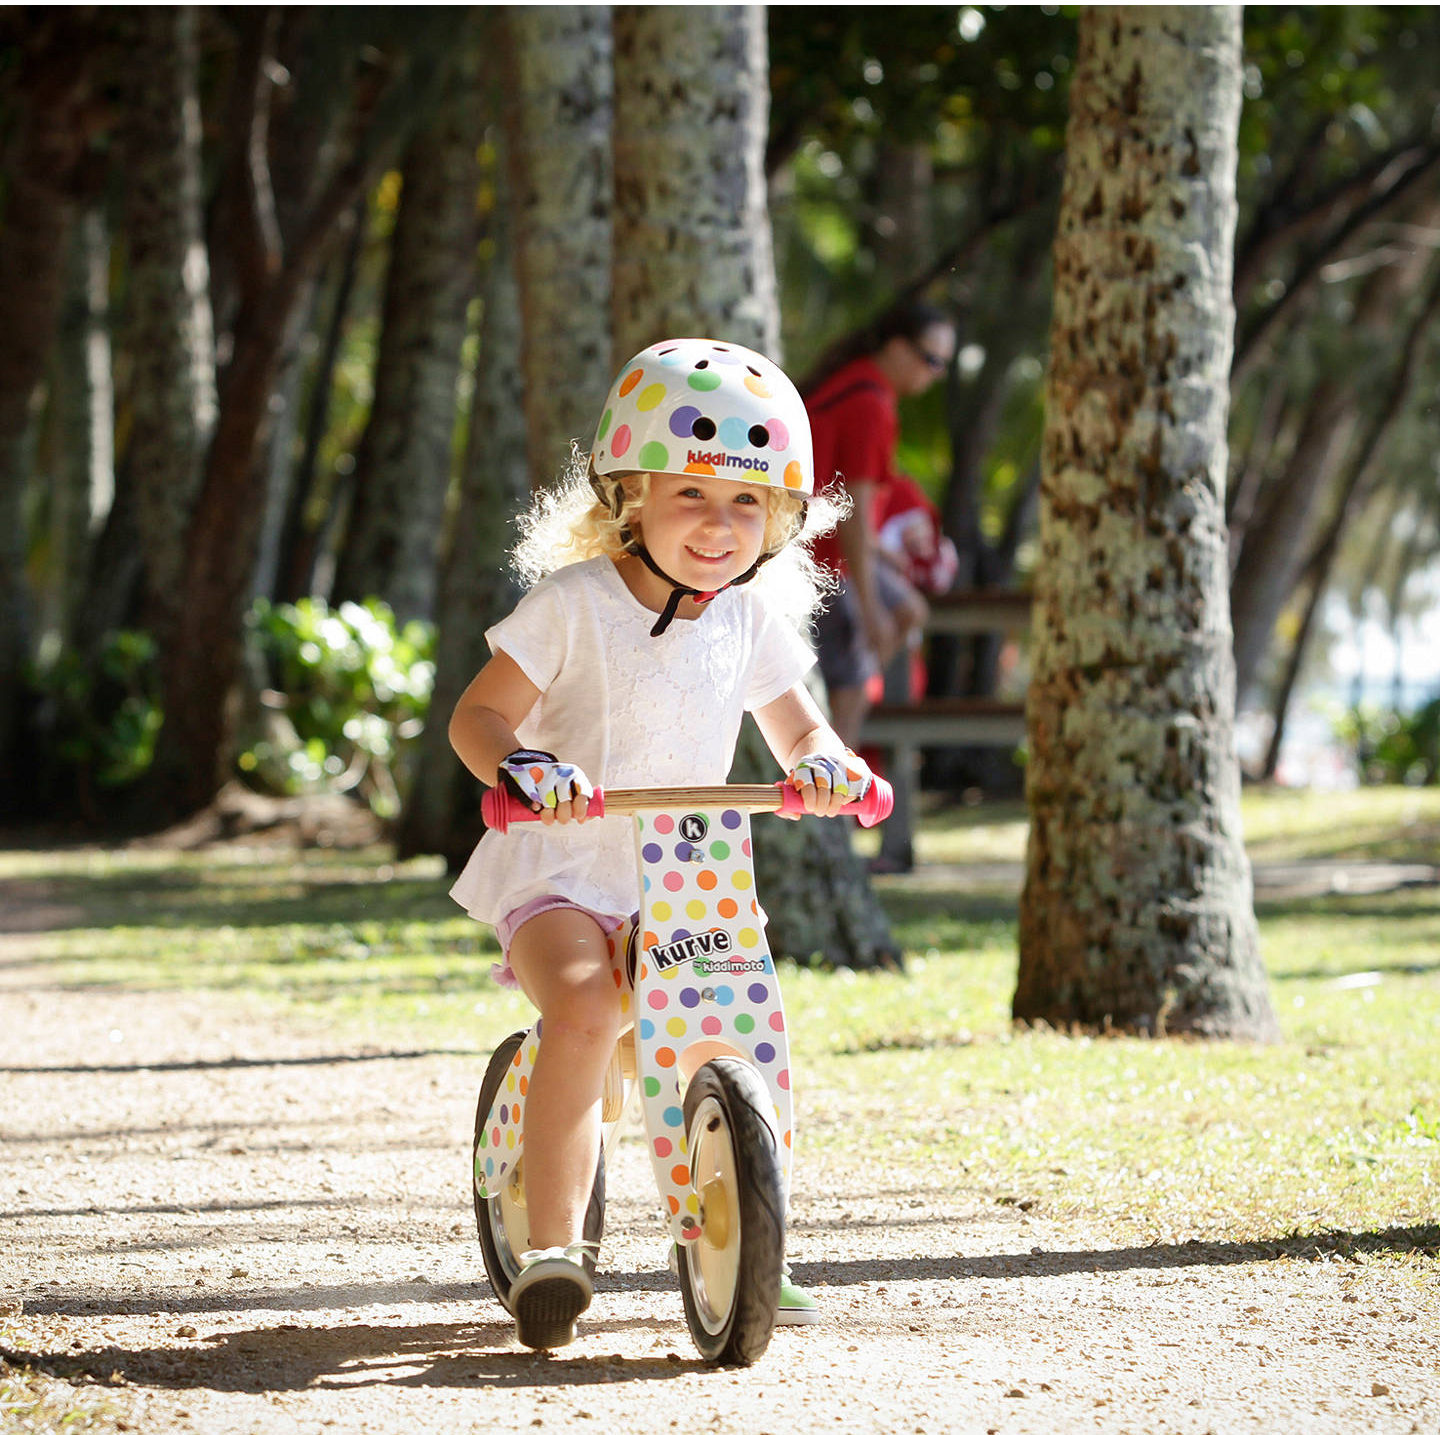 The best bikes and trikes for little kids